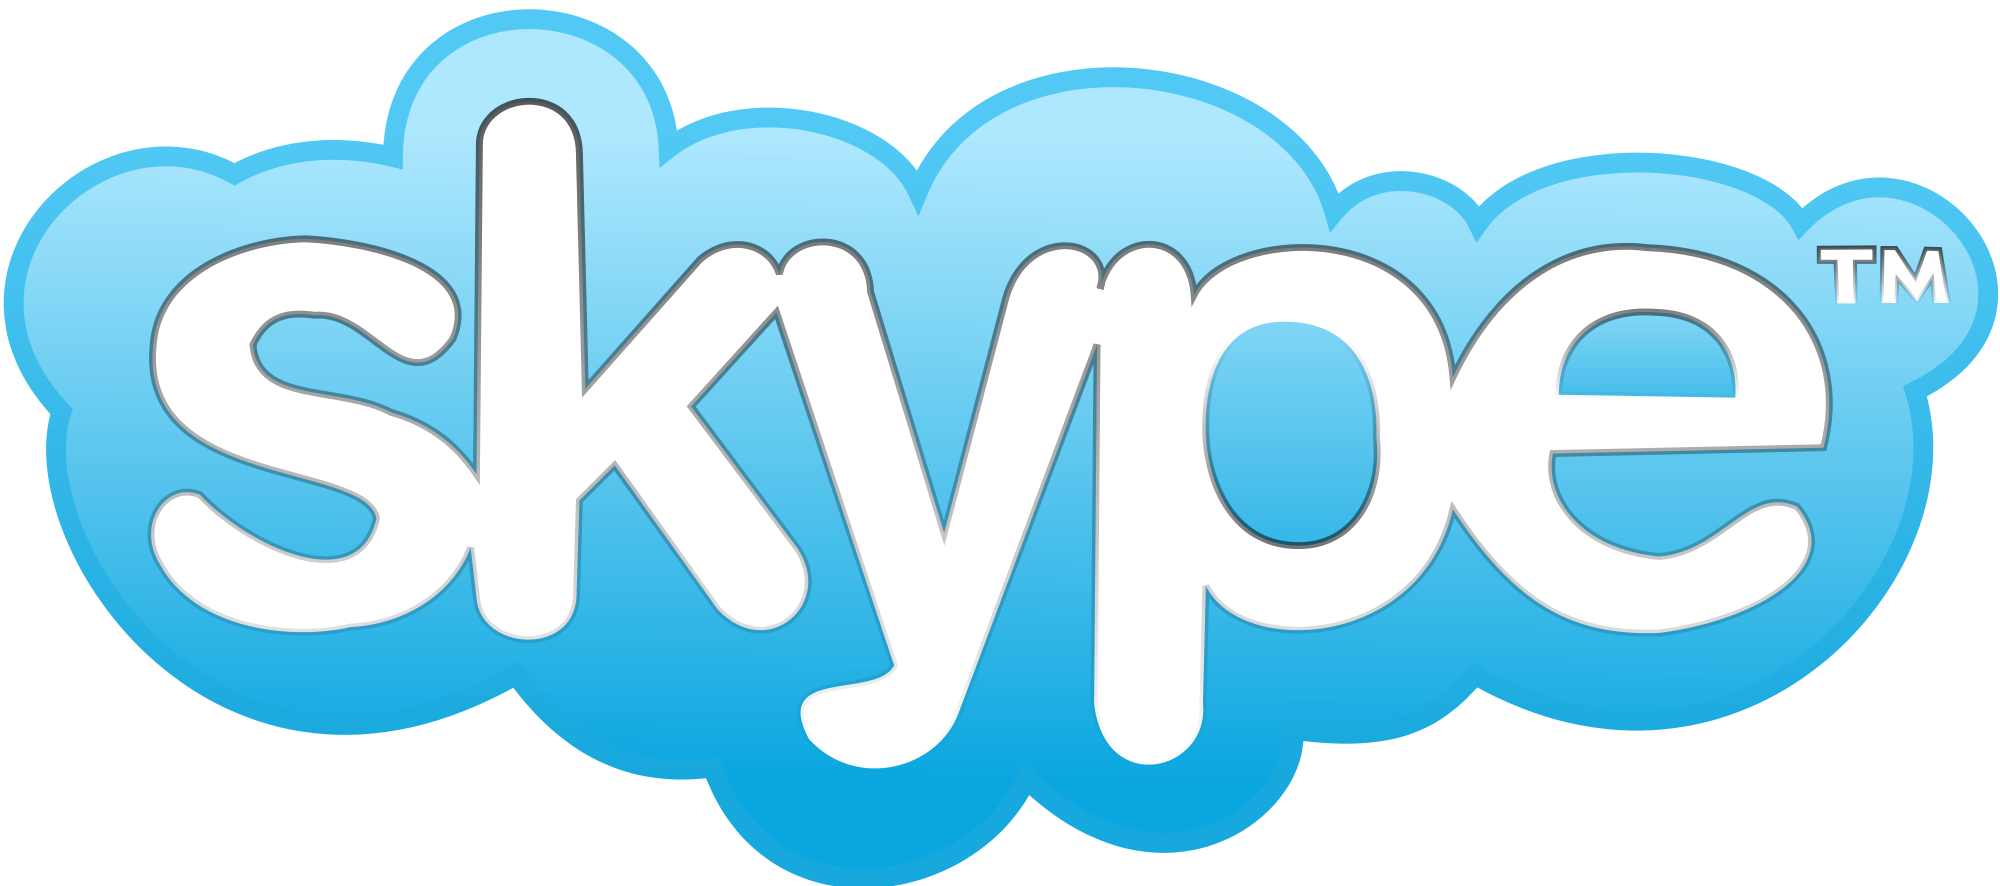 How To Find a Job On Skype (Part 1)